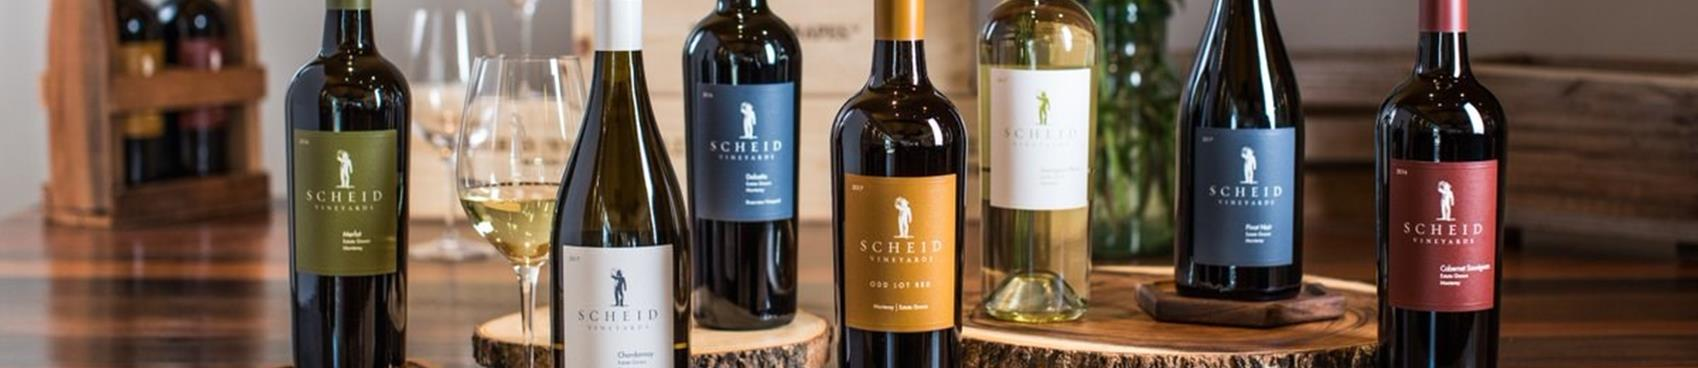 A image of Scheid Vineyards Carmel Tasting Room